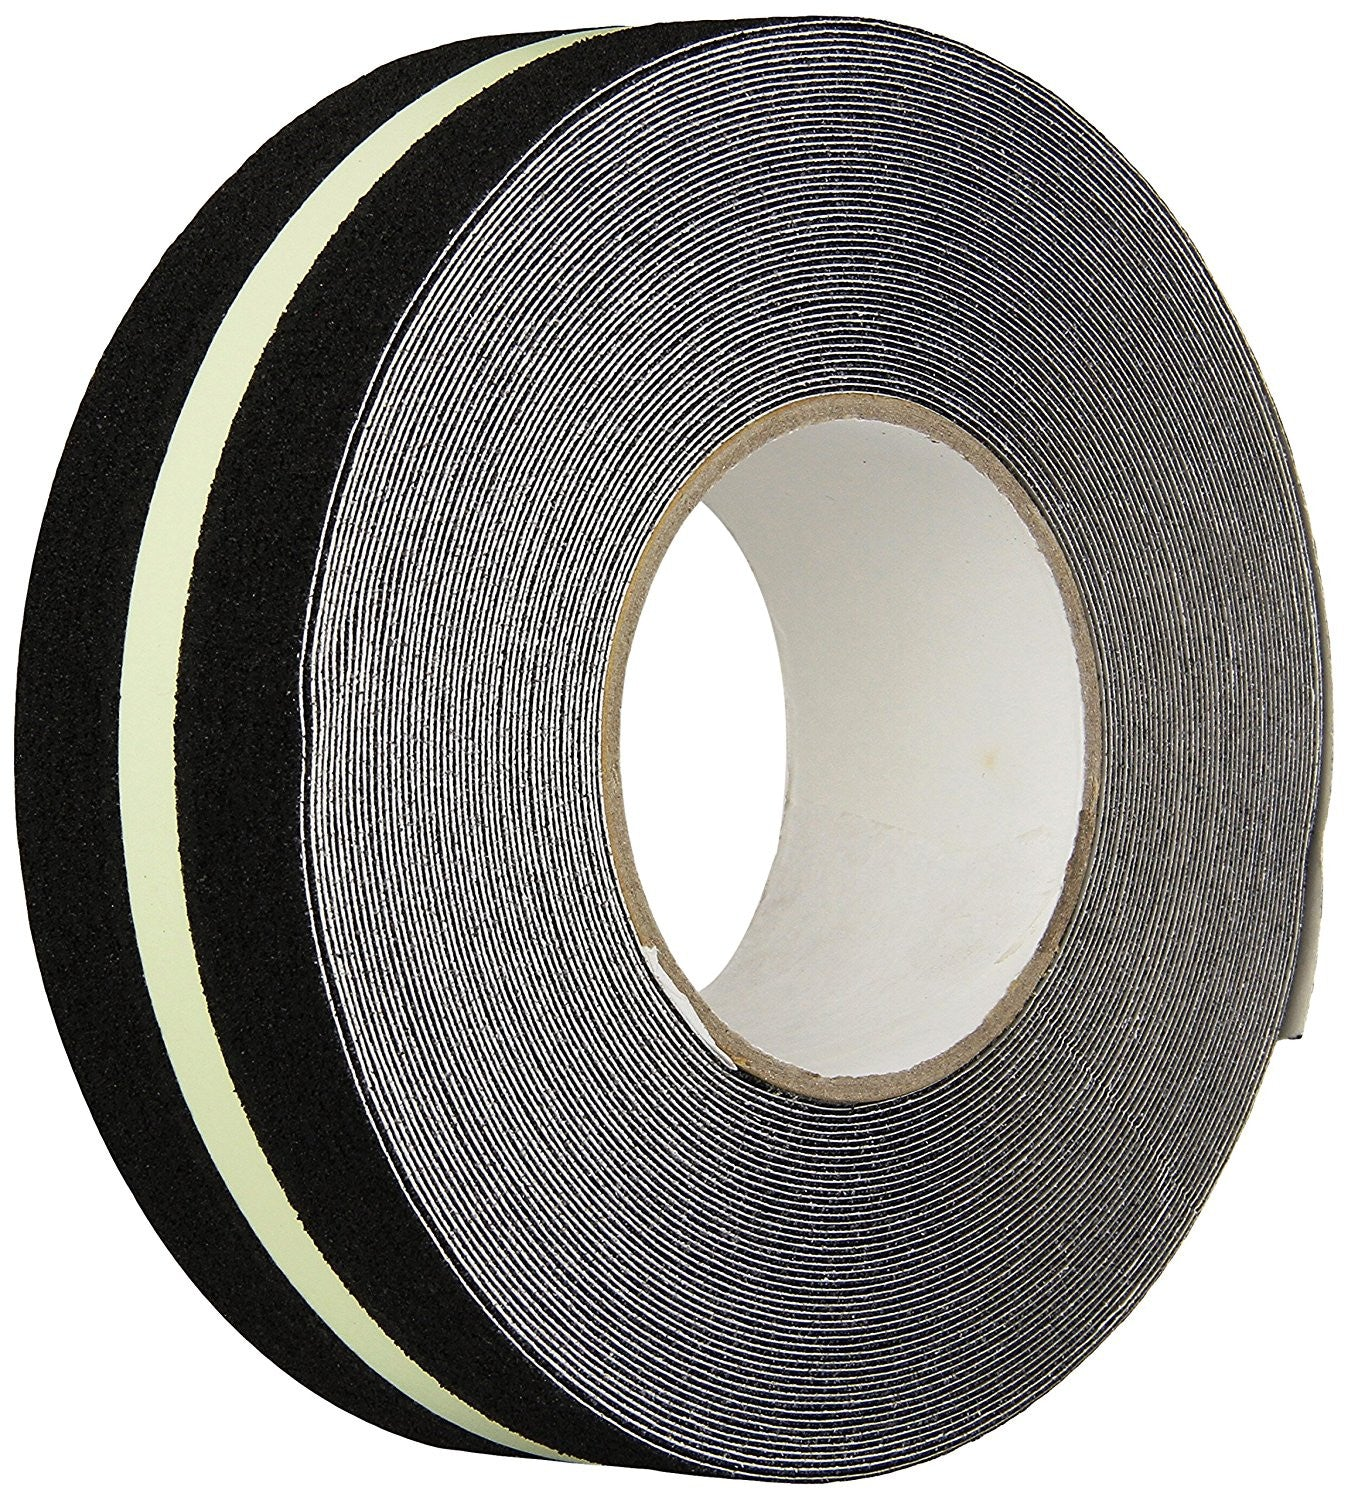 "2"" X 60' Roll Heskins Safety Grip Glow Line Anti Slip Tape - Drop Ships - 2 to 5 Day Processing"